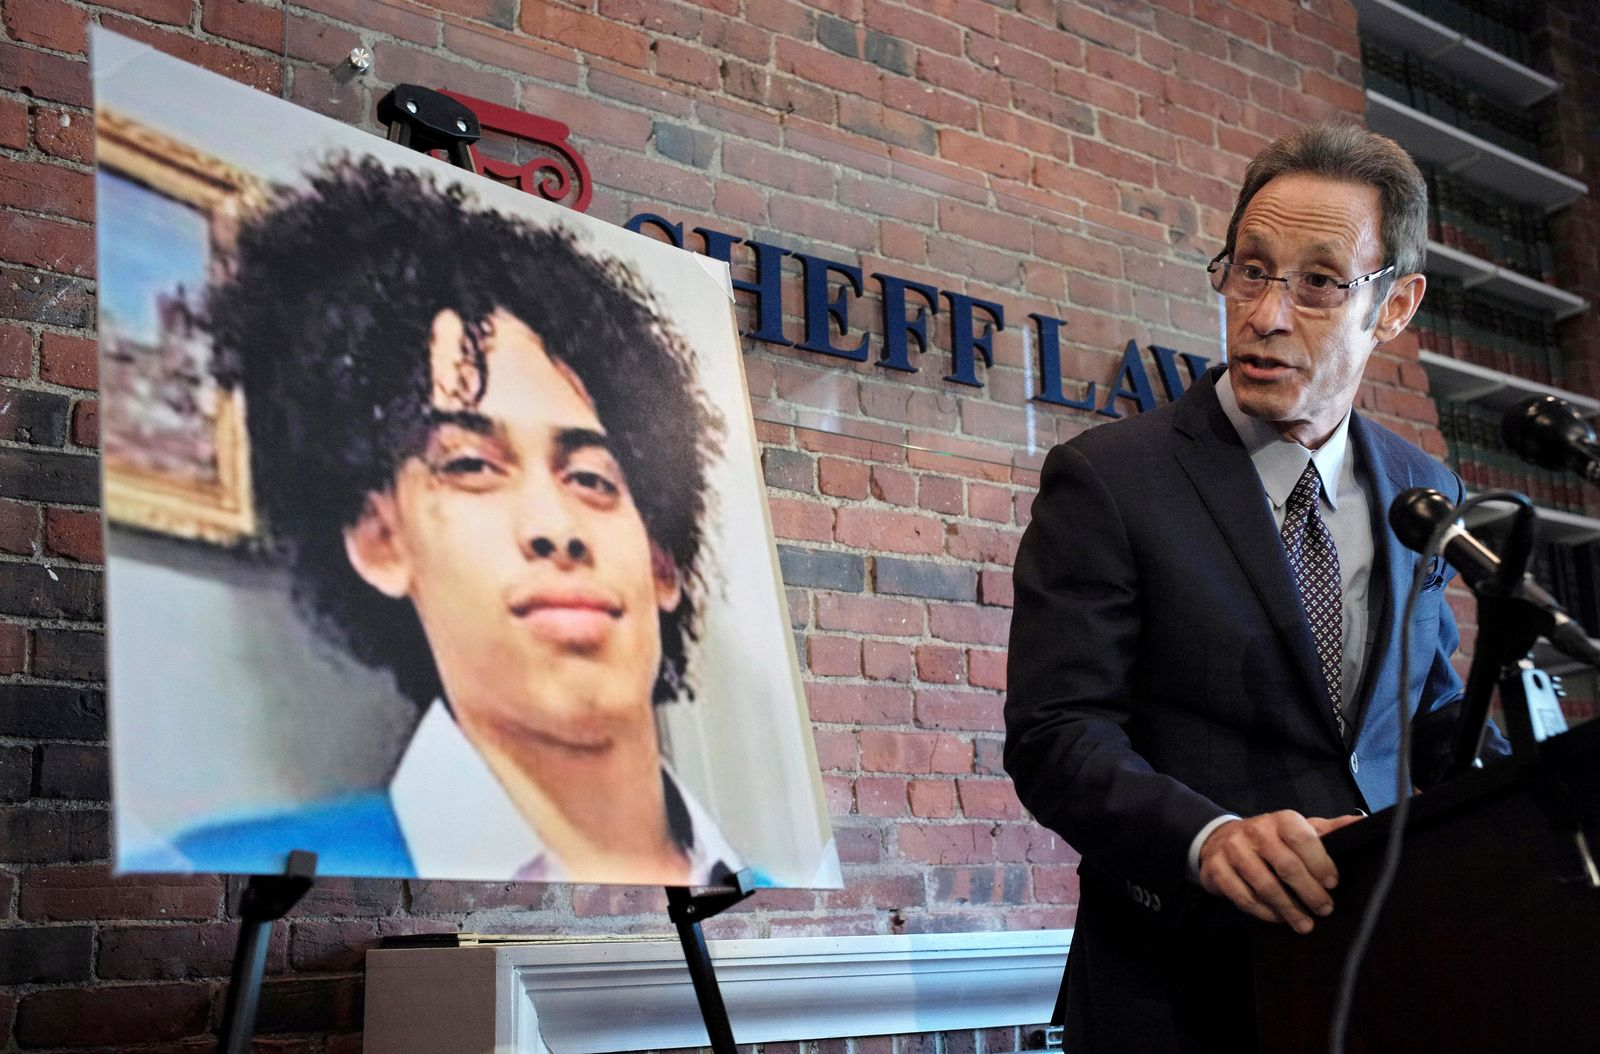 FILE — In this Oct. 25, 2018, file photo, Doug Sheff, right, an attorney for the family of Leonel Rondon, pictured at left, speaks during a news conference, in Boston.{ } (AP Photo/Steven Senne, File)